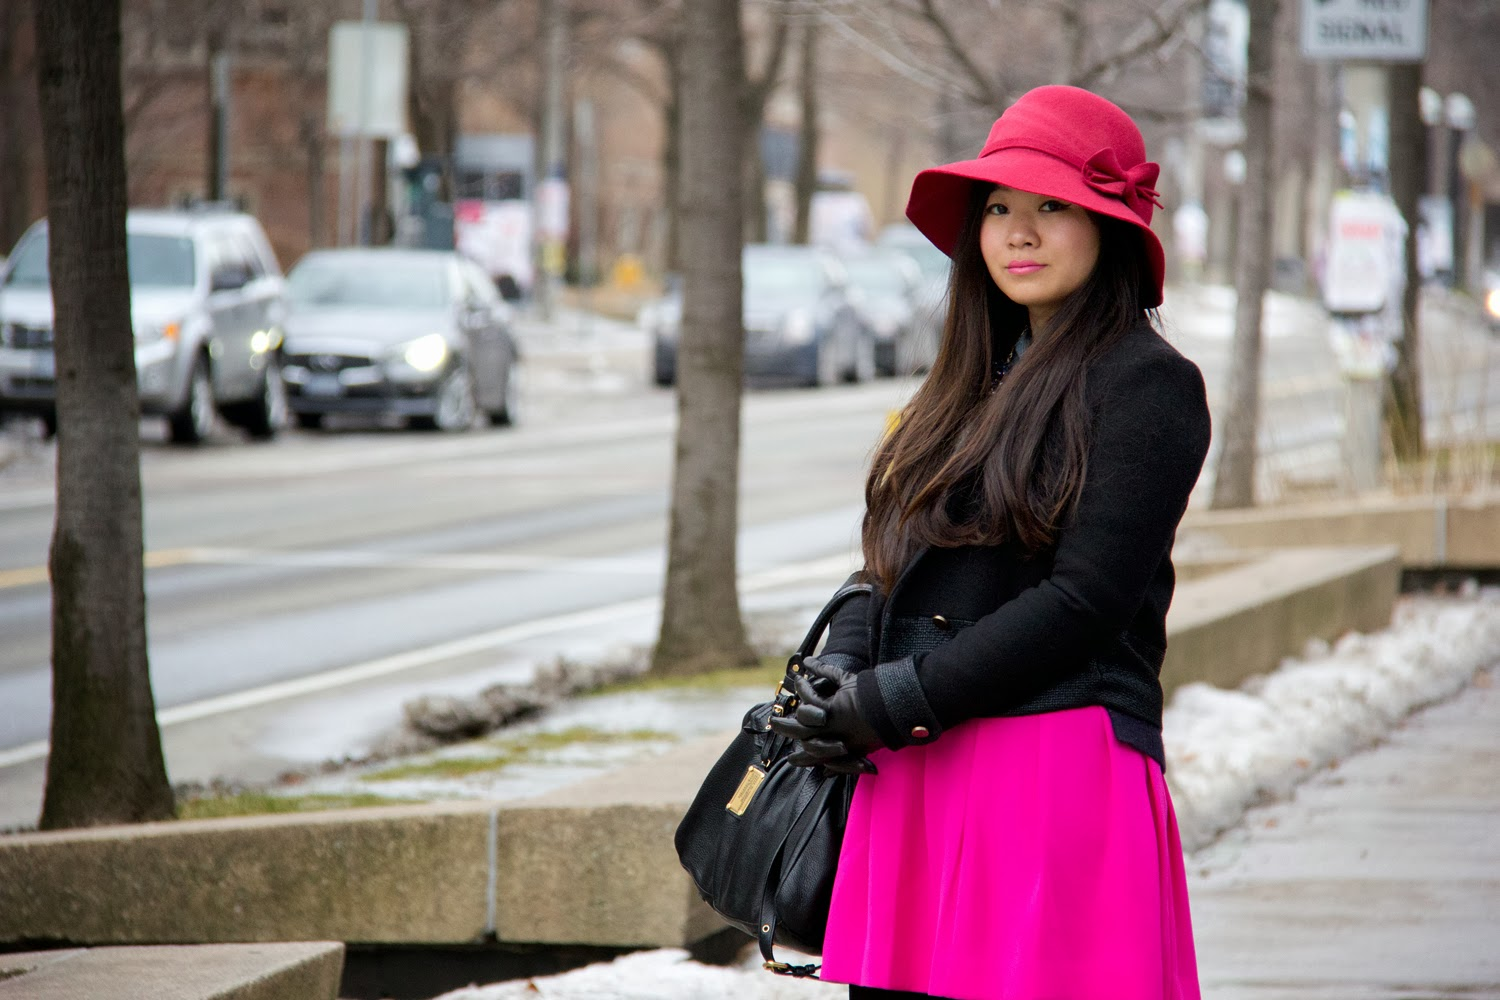 Anthopologie-Hat, Zara-Wool-Jacket, JCrew-Hot-PInk-Skater-Skirt, Marc-By-Marc-Jacobs-Bag